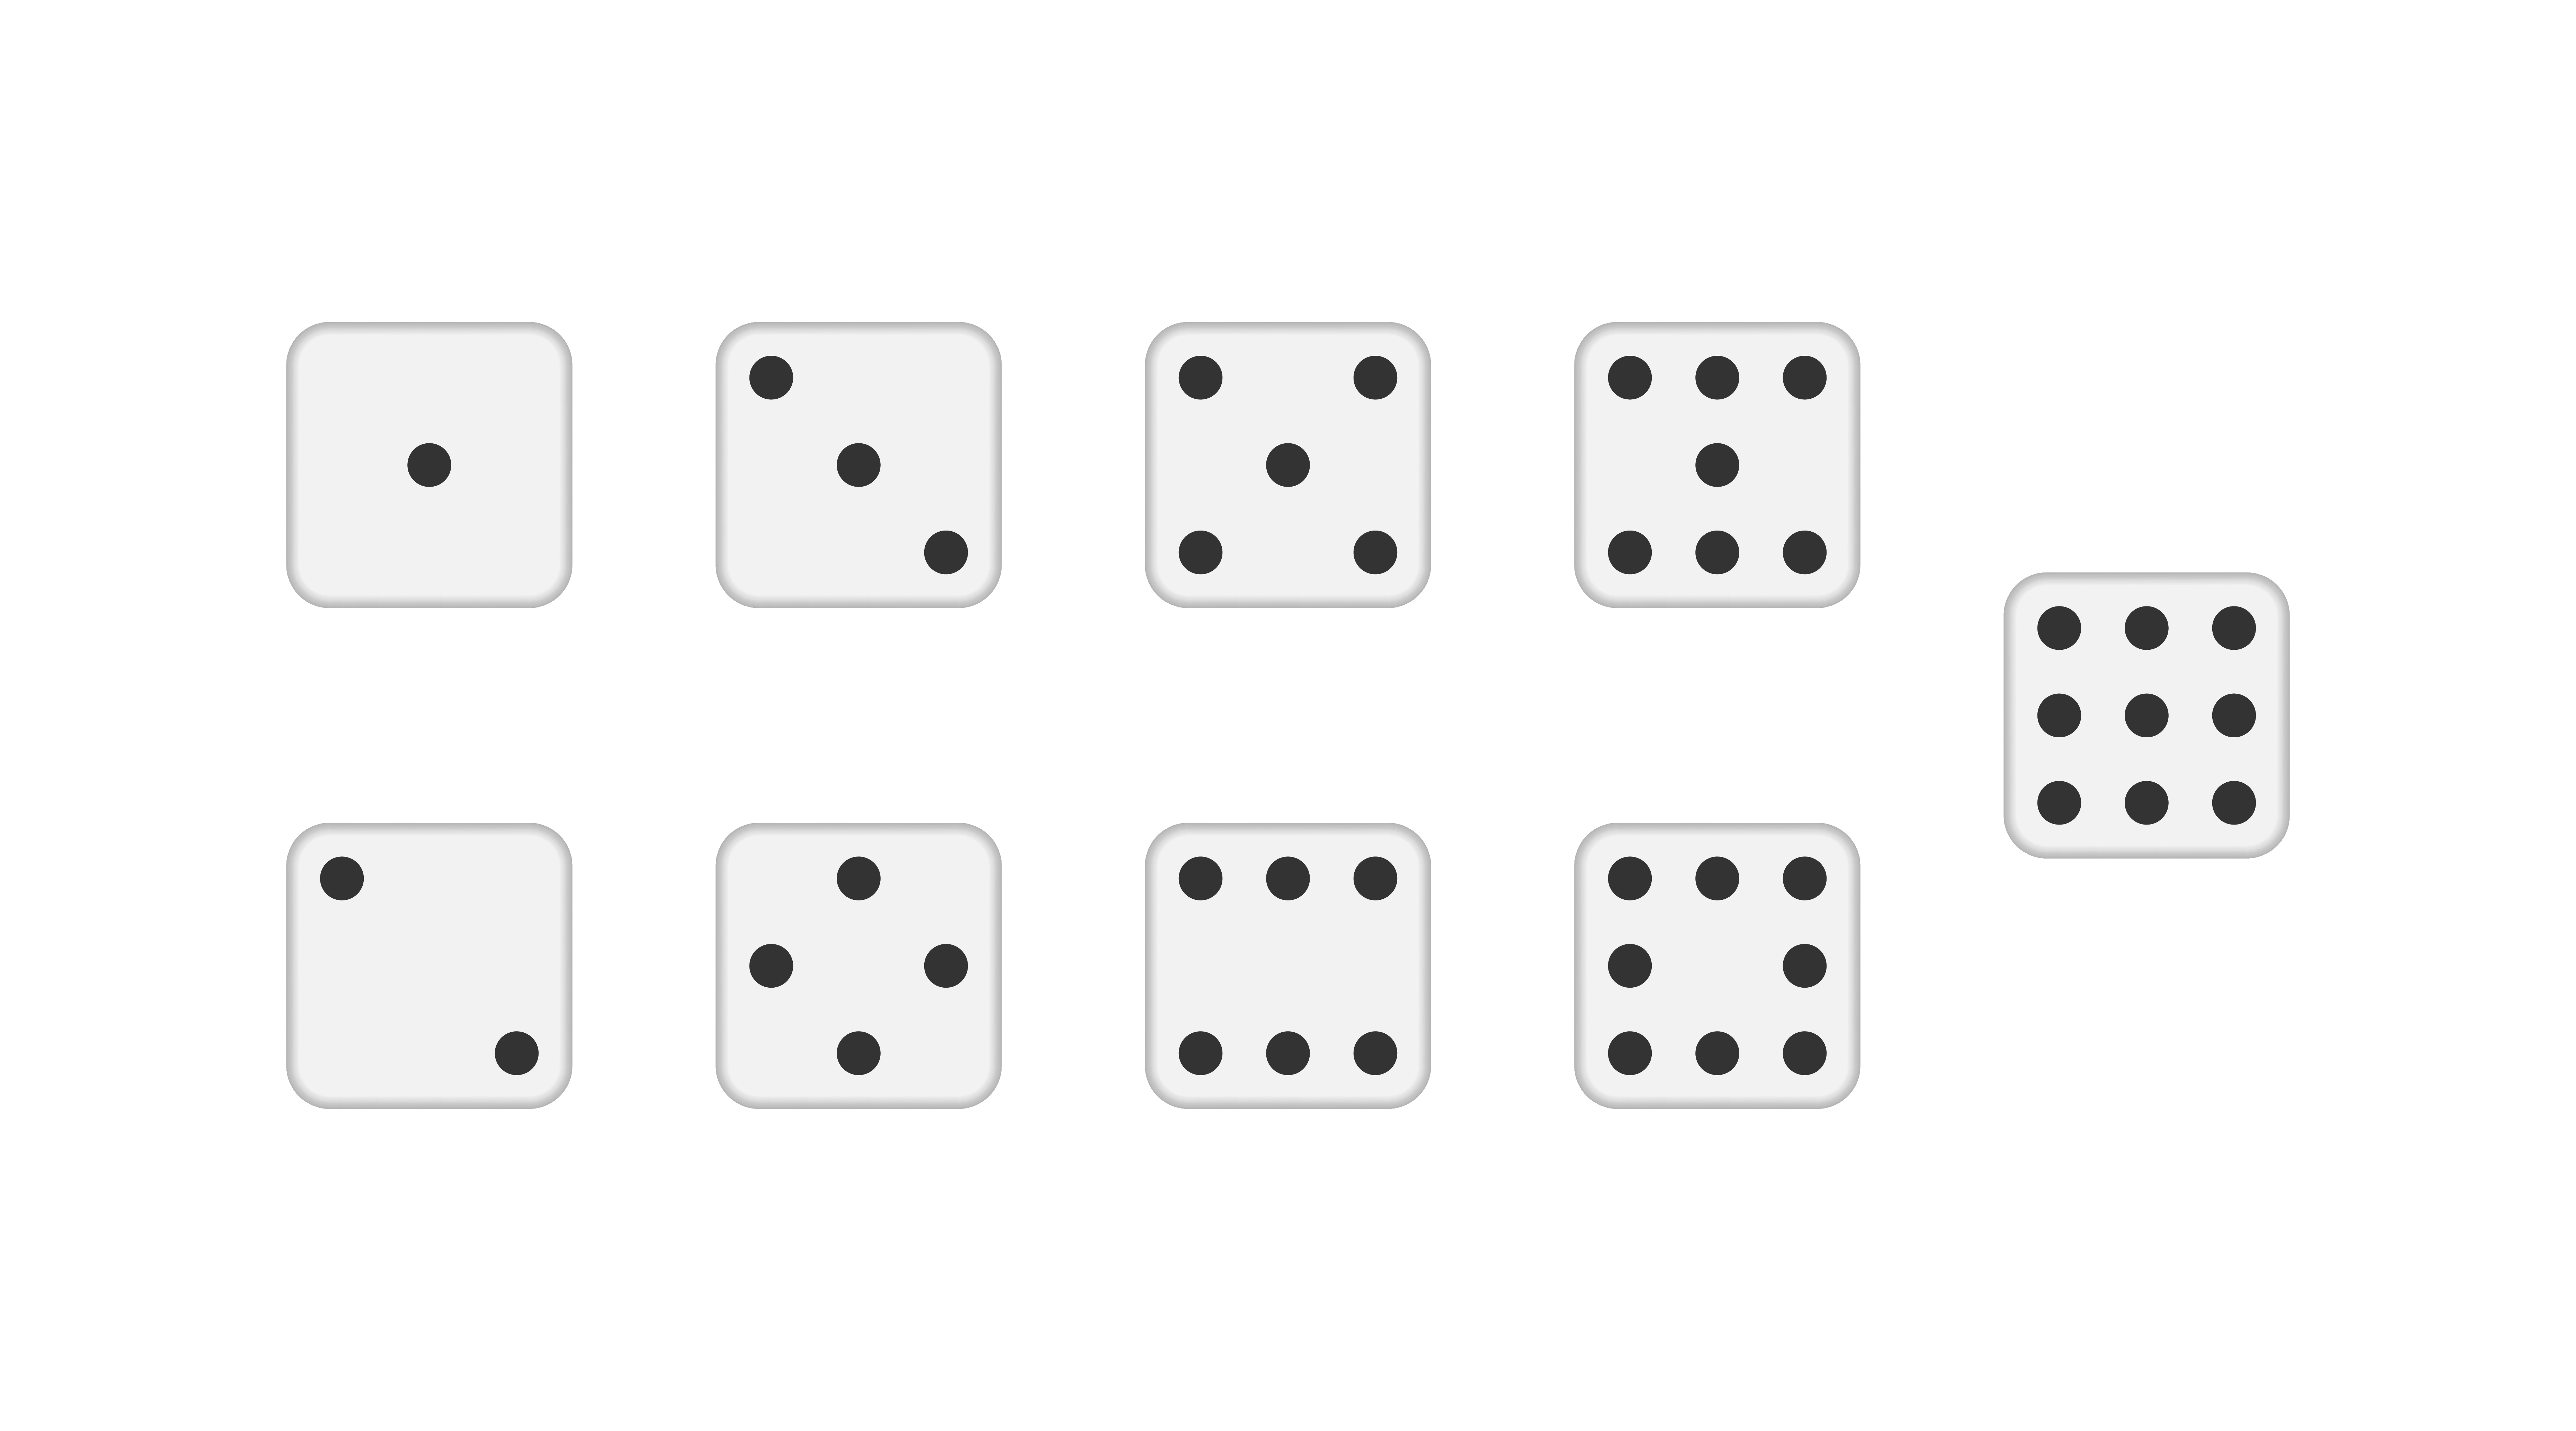 Vector Dice. White cubes icons with black circles. Six and nine dice. One two three four five dots. Devils bones poker game